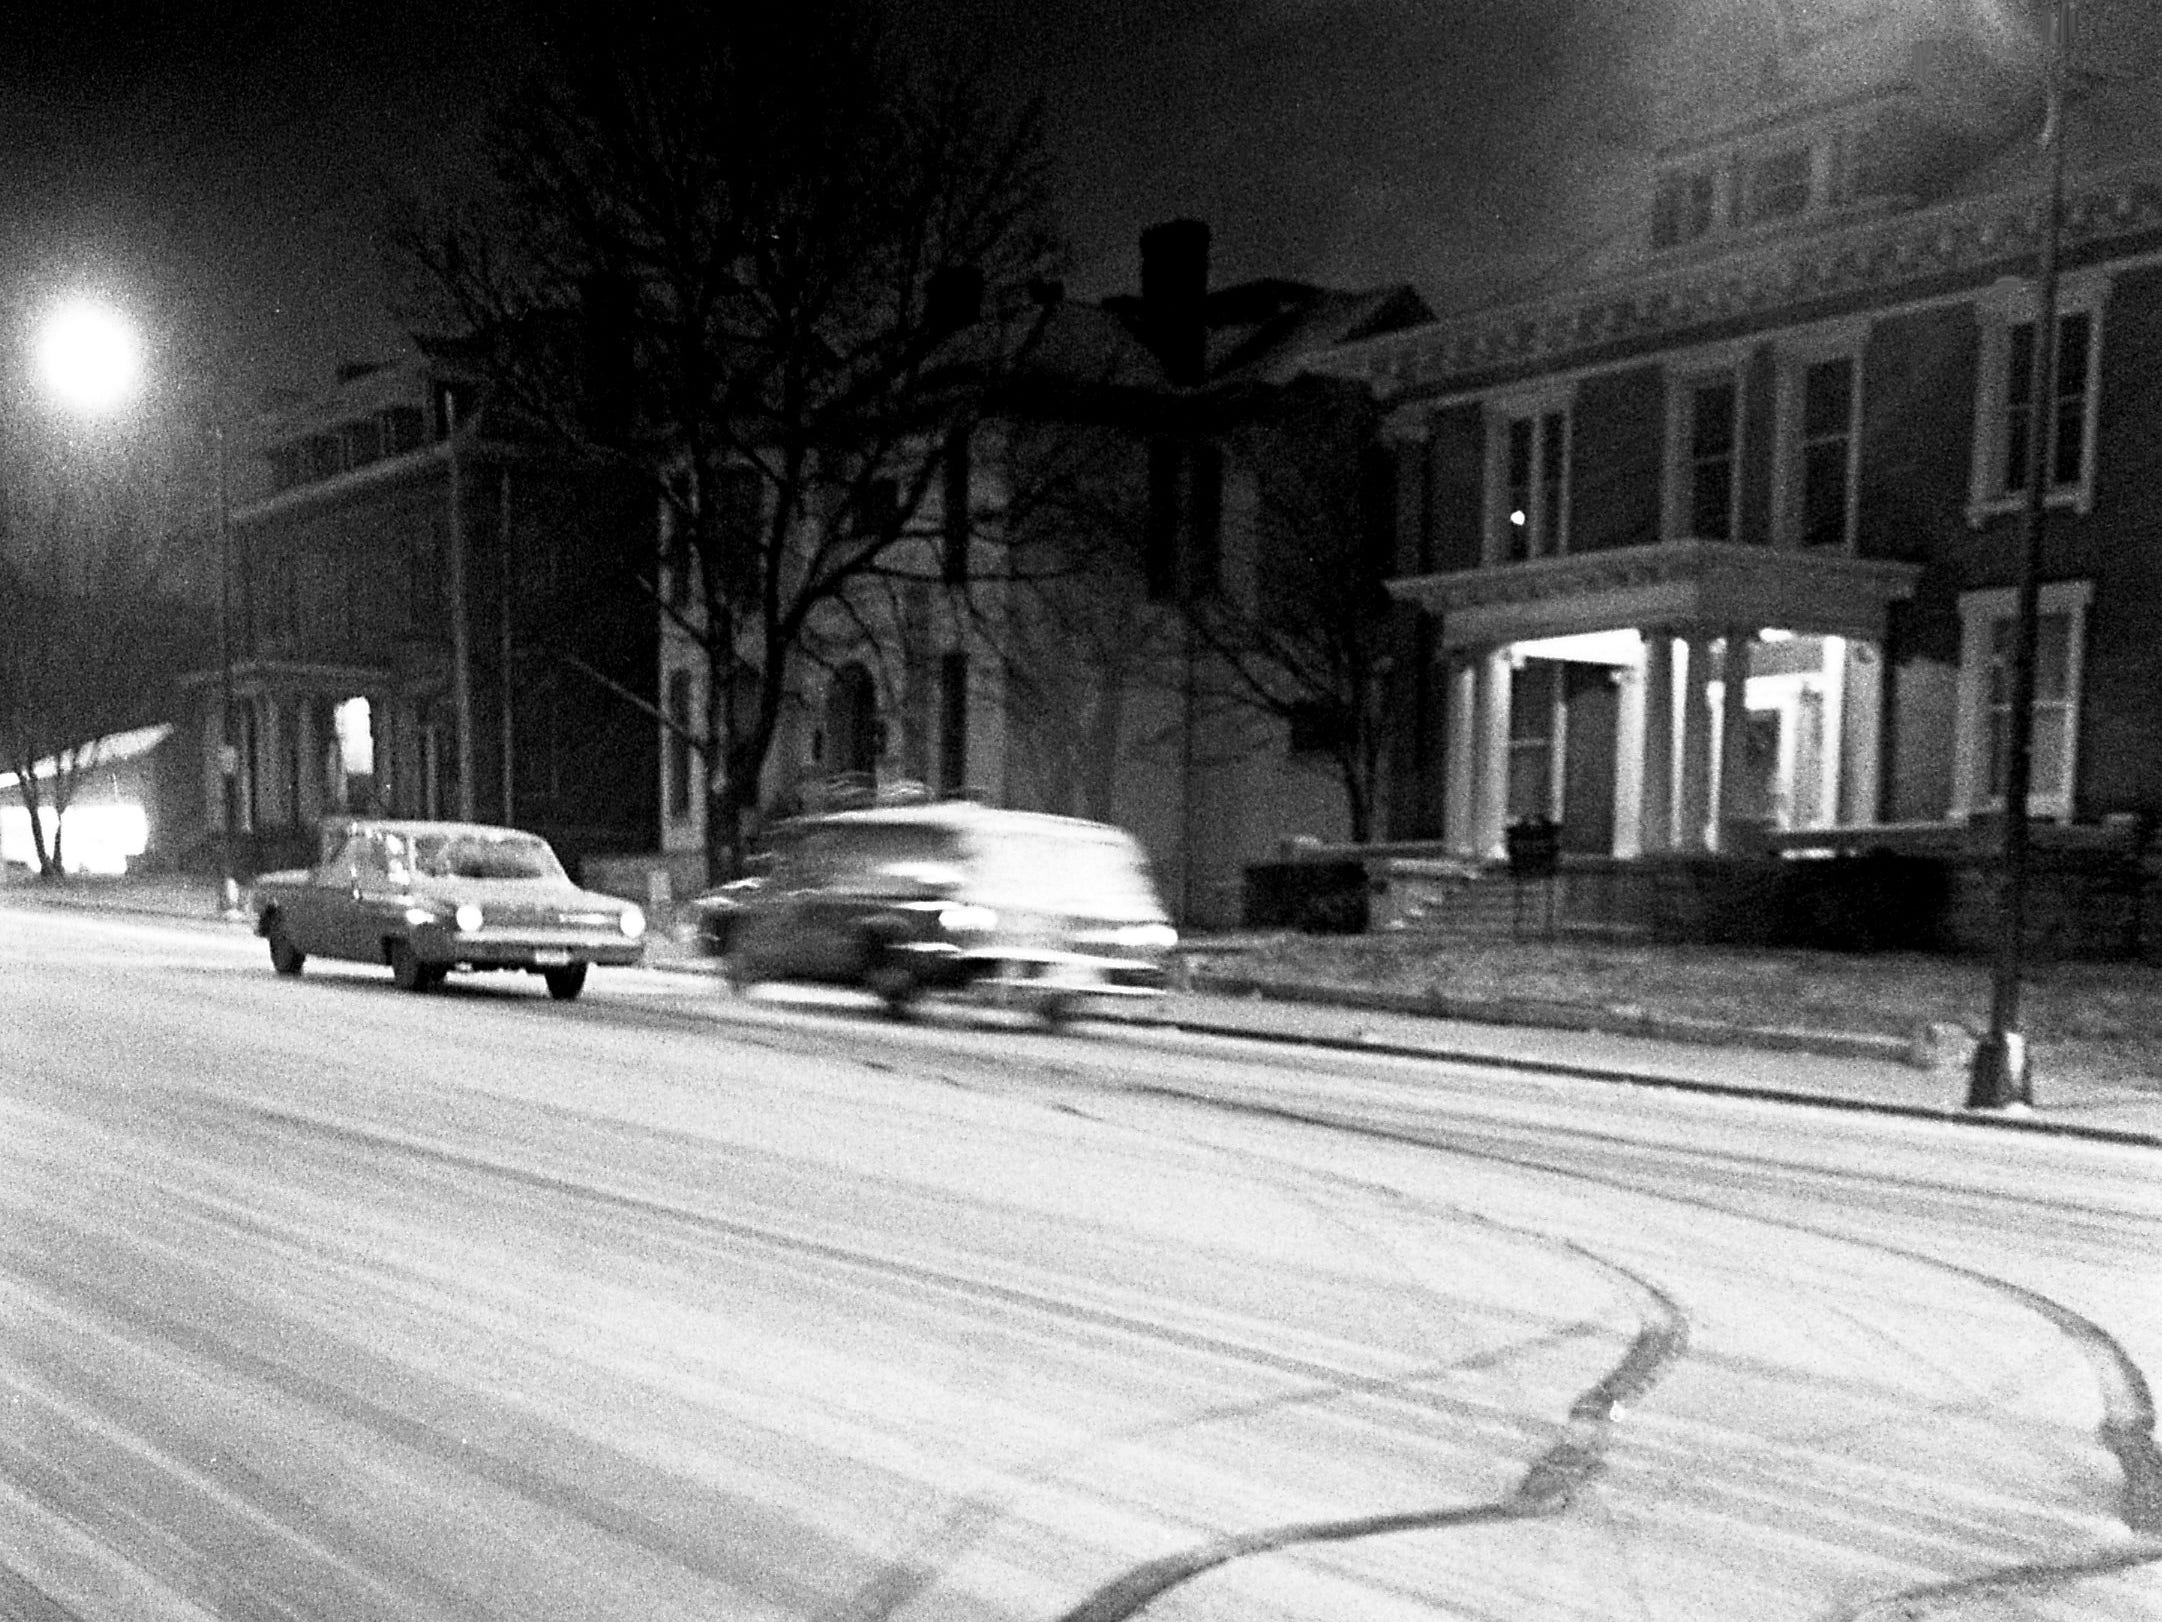 A luckless motorist, stalled on West End Avenue on Jan. 26, 1969, after his car zigzagged erratically across the slick thoroughfare, sits helpless as a police van speeds around him. Such scenes were common on Nashville streets after about 3 inches of snow iced the roads.